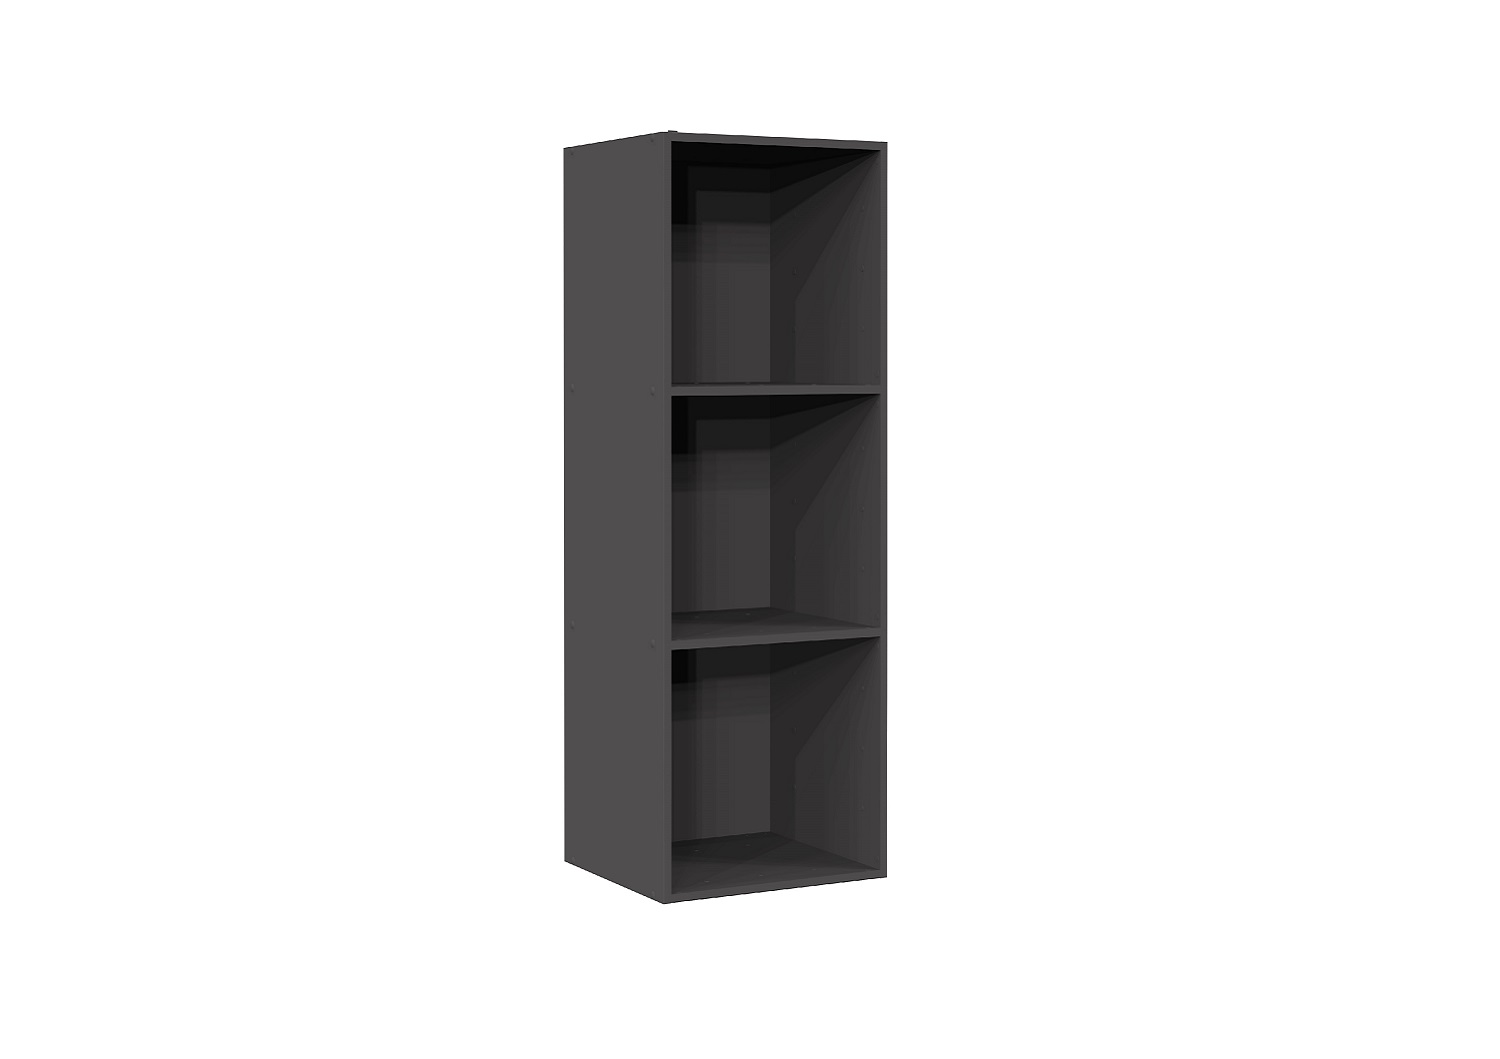 Bilrich Storage Furniture - Multi Kaz 3x1 Cube Grey